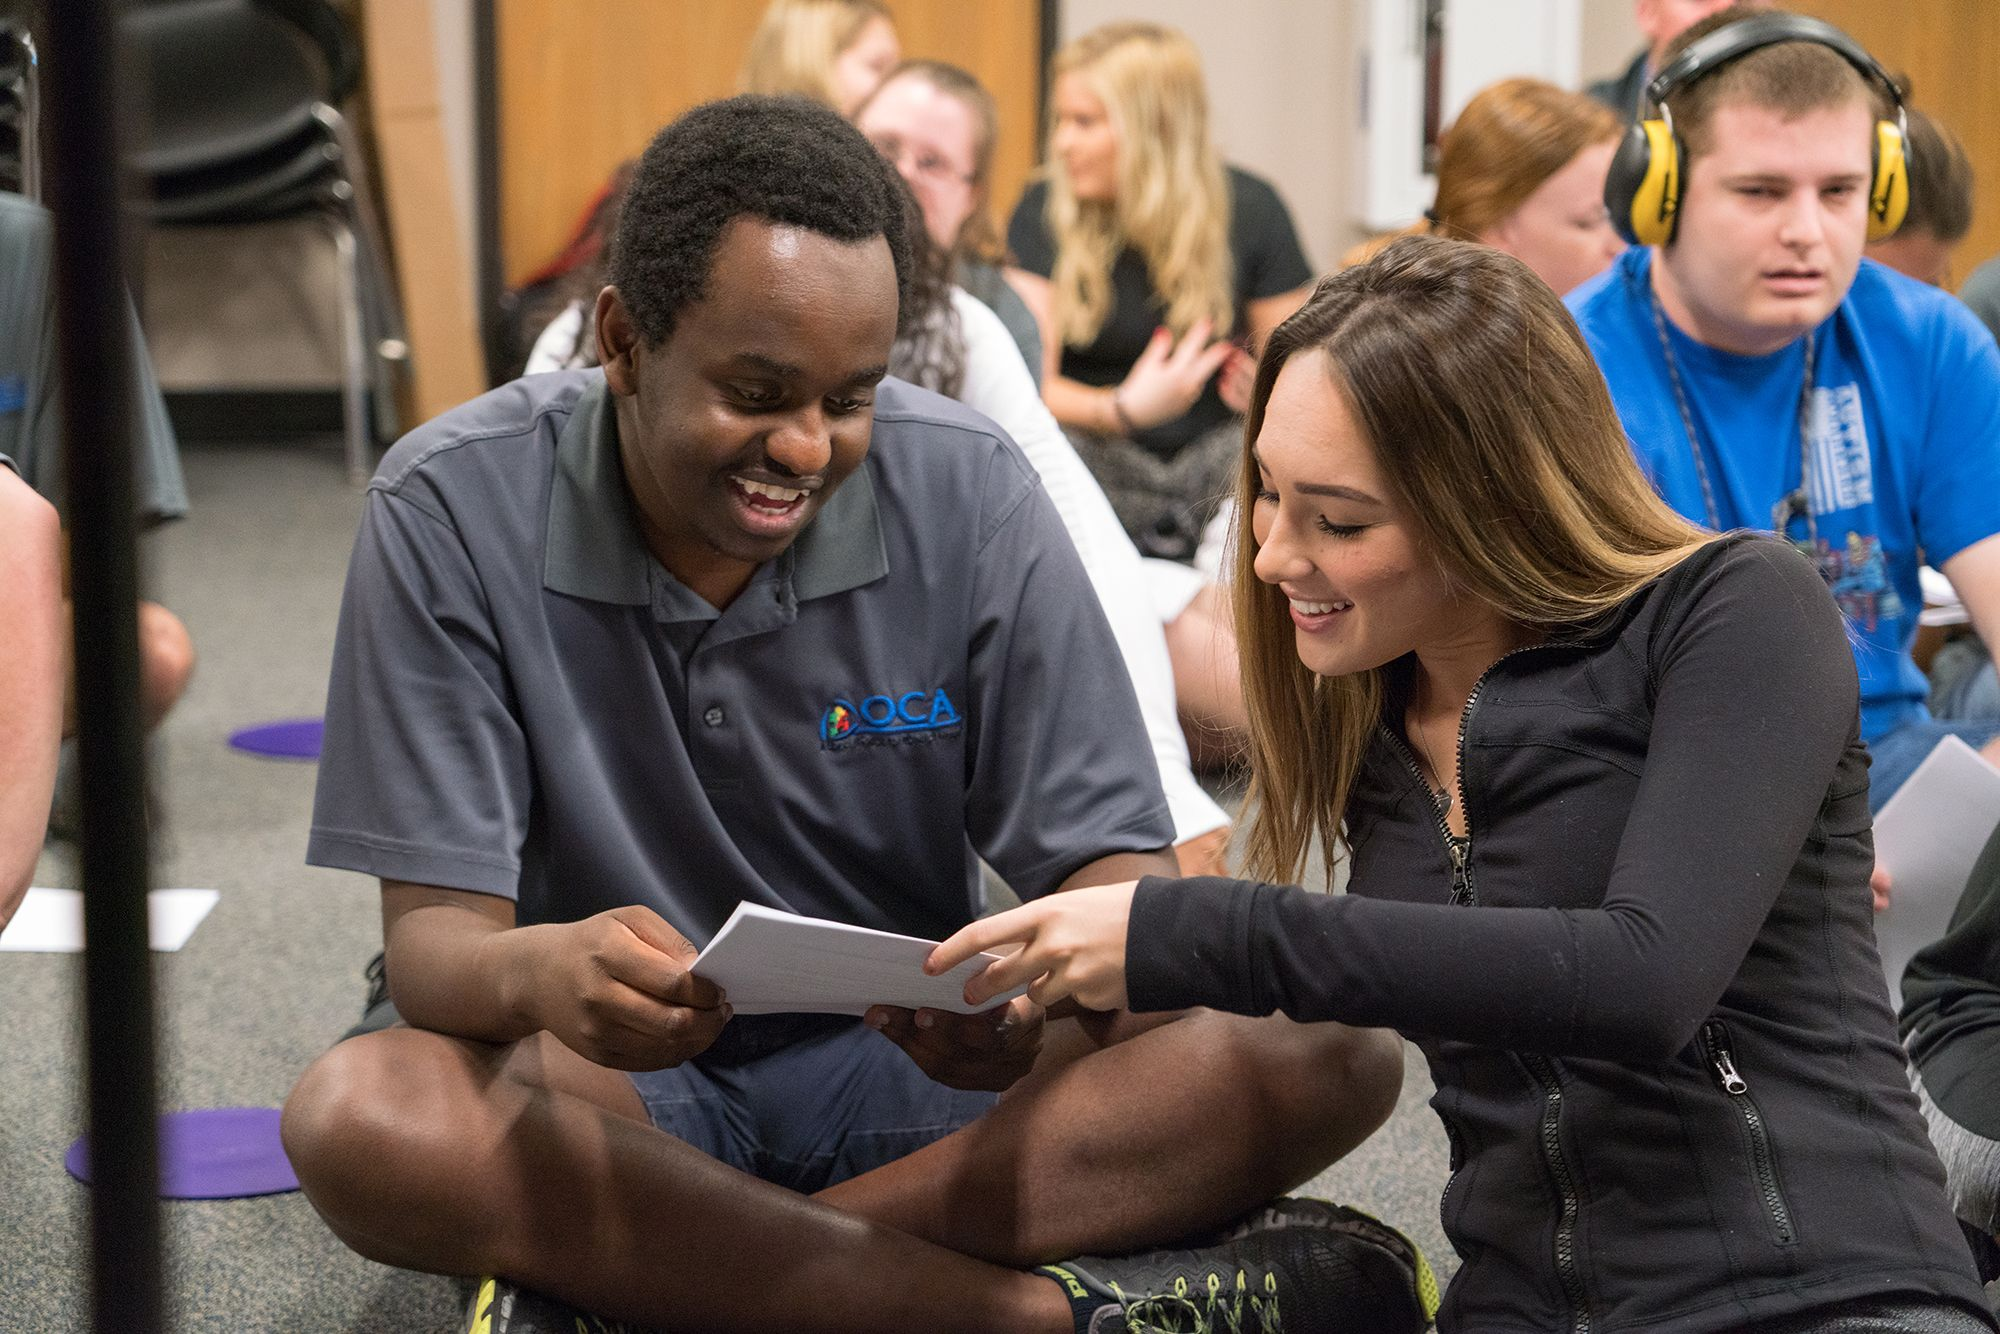 A college student looks at a play script with a person with autism.